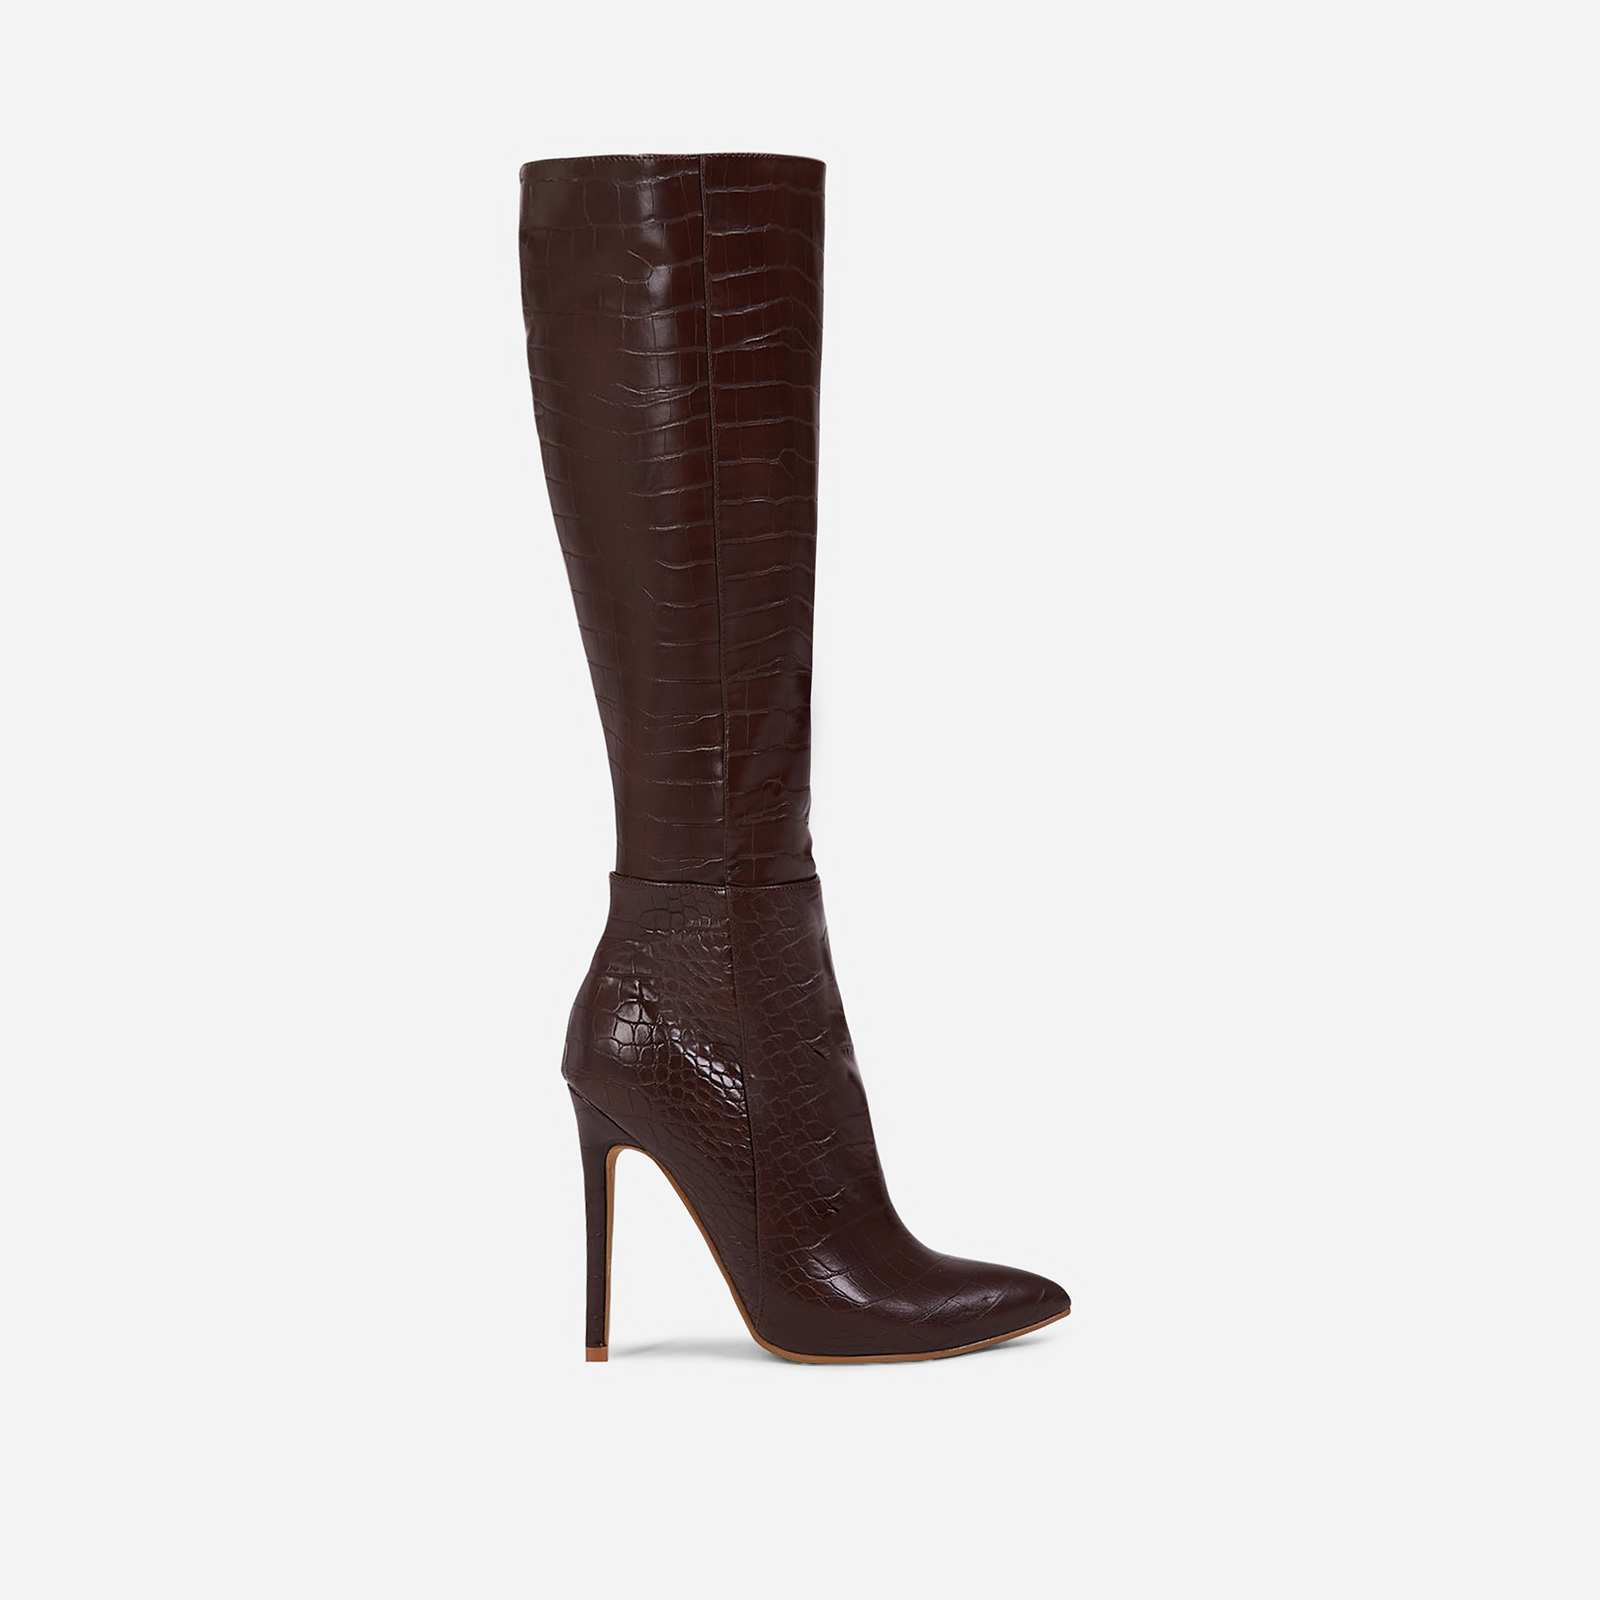 Rose Knee High Long Boot In Dark Brown Croc Print Faux Leather